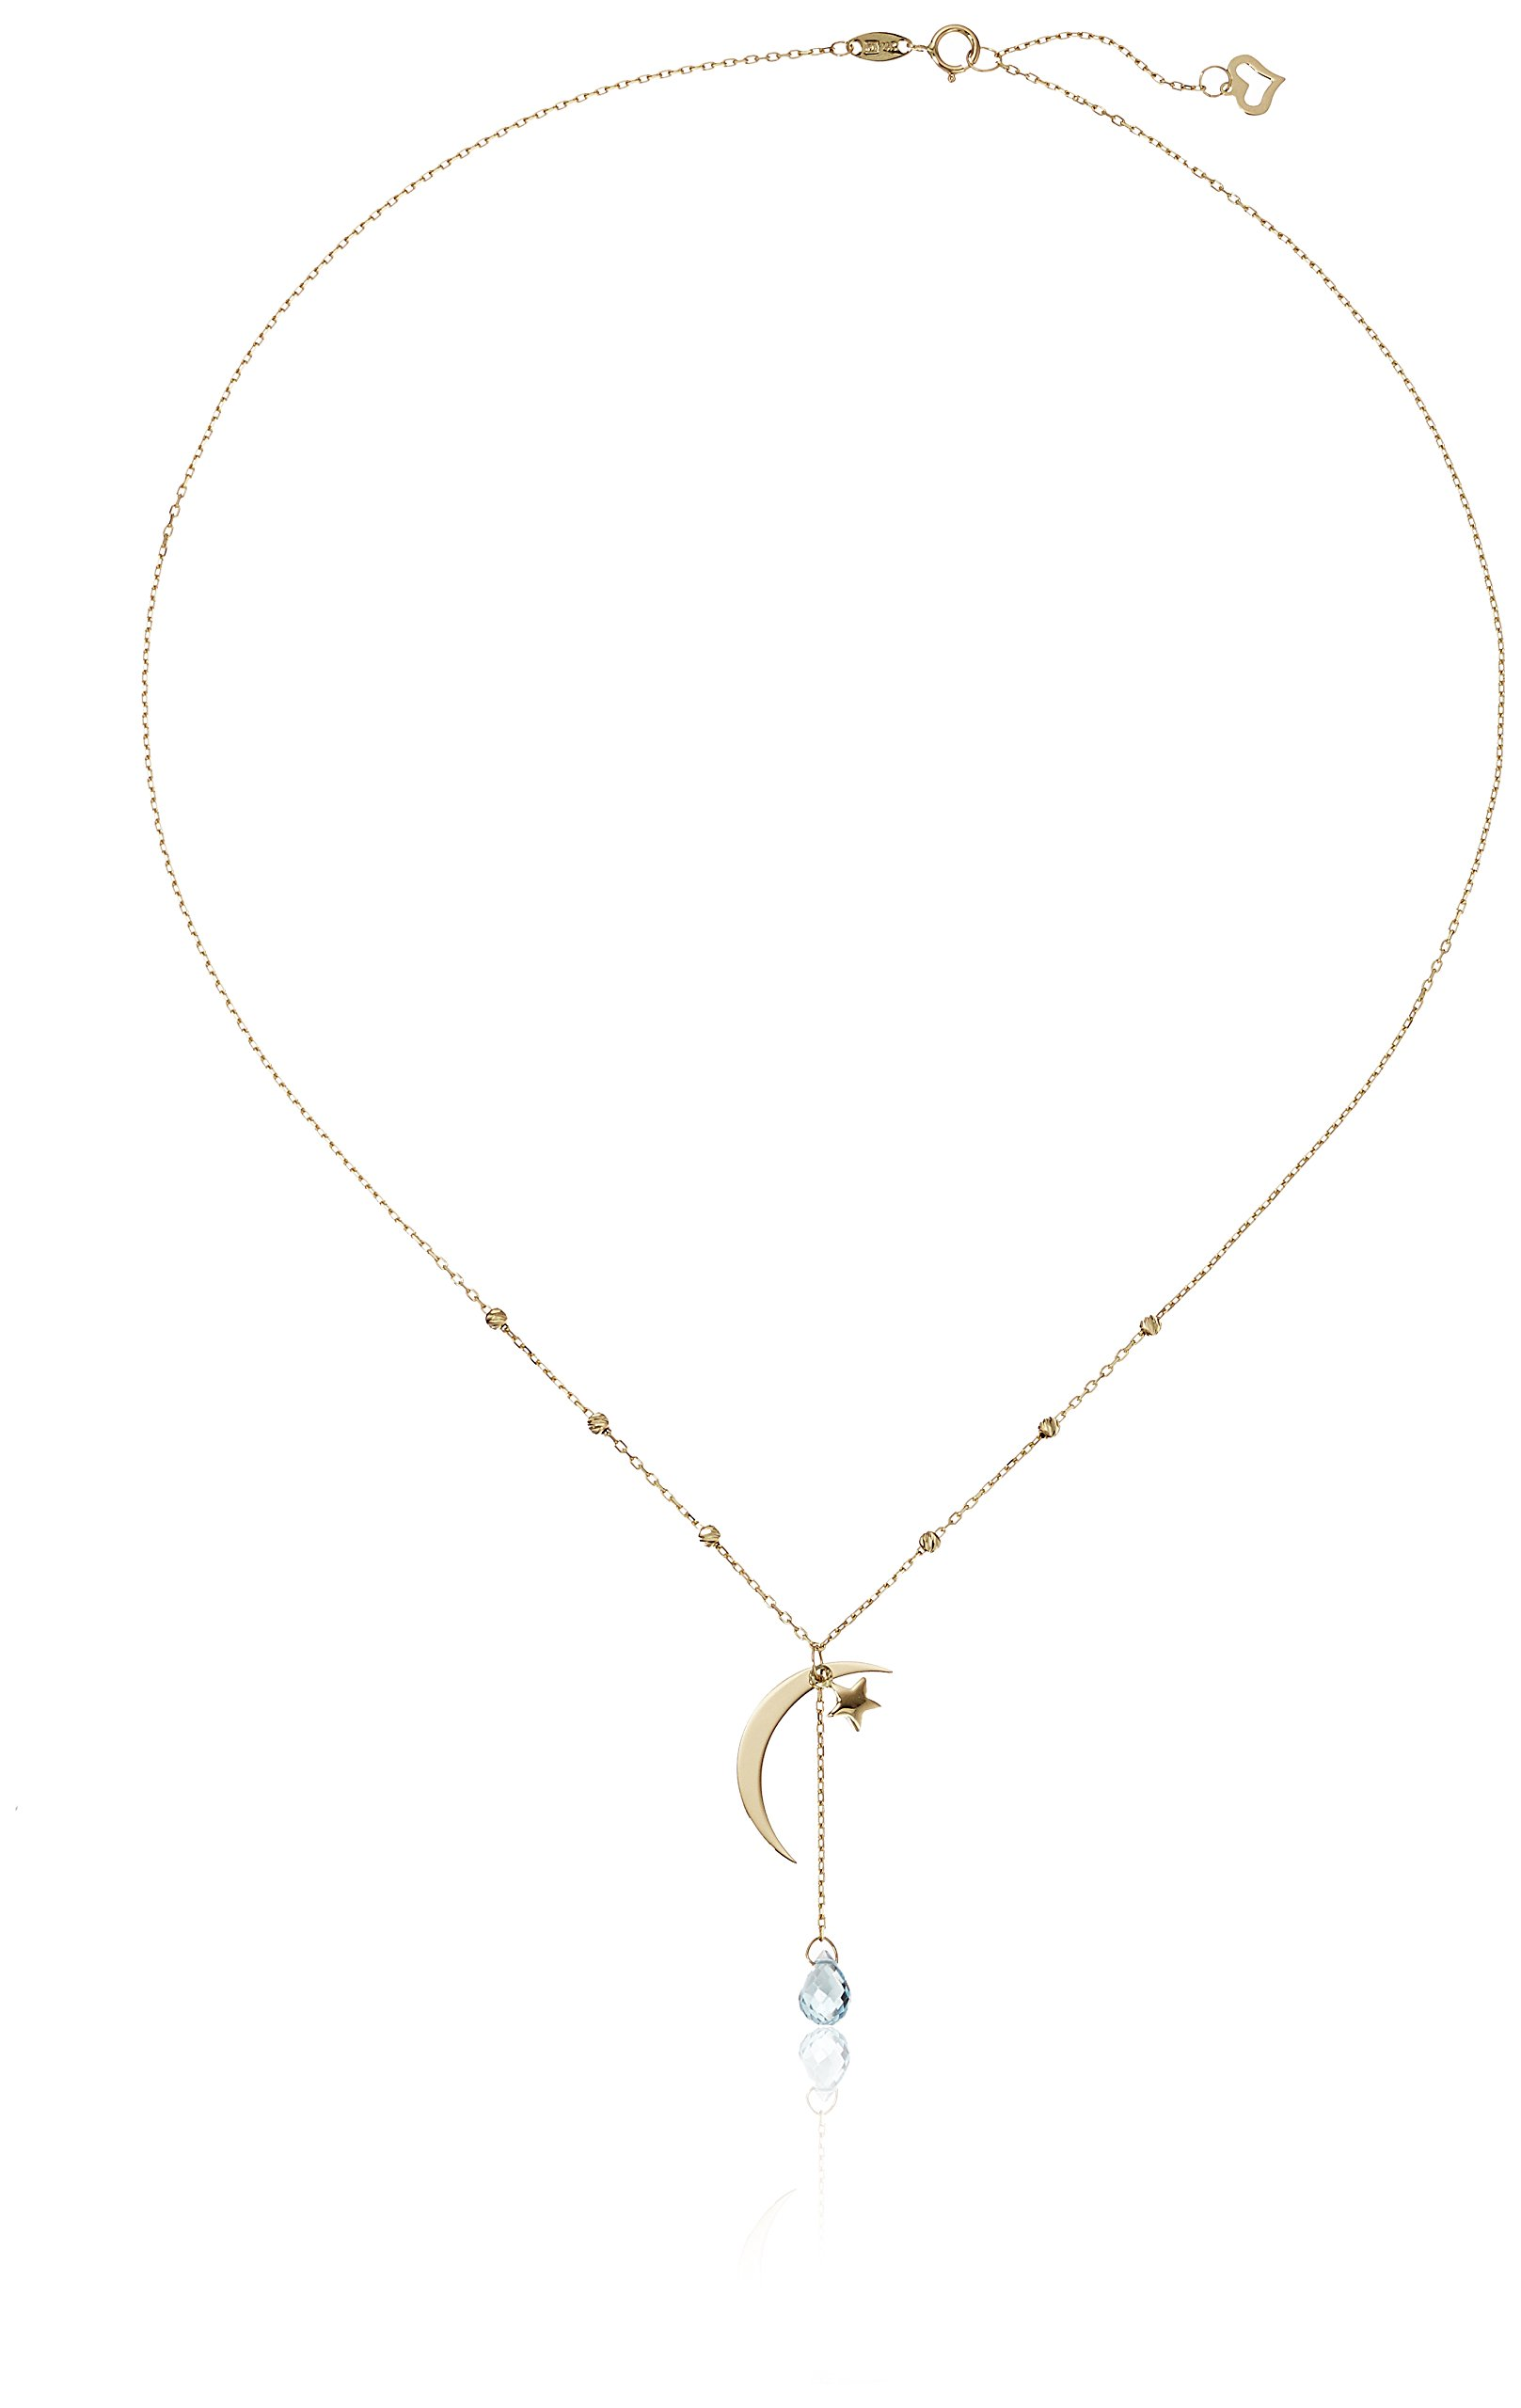 14k Yellow Gold Star and Moon Adjustable with Sky Blue Topaz Briolette Y-Shaped Necklace, 17''+1'' Extender